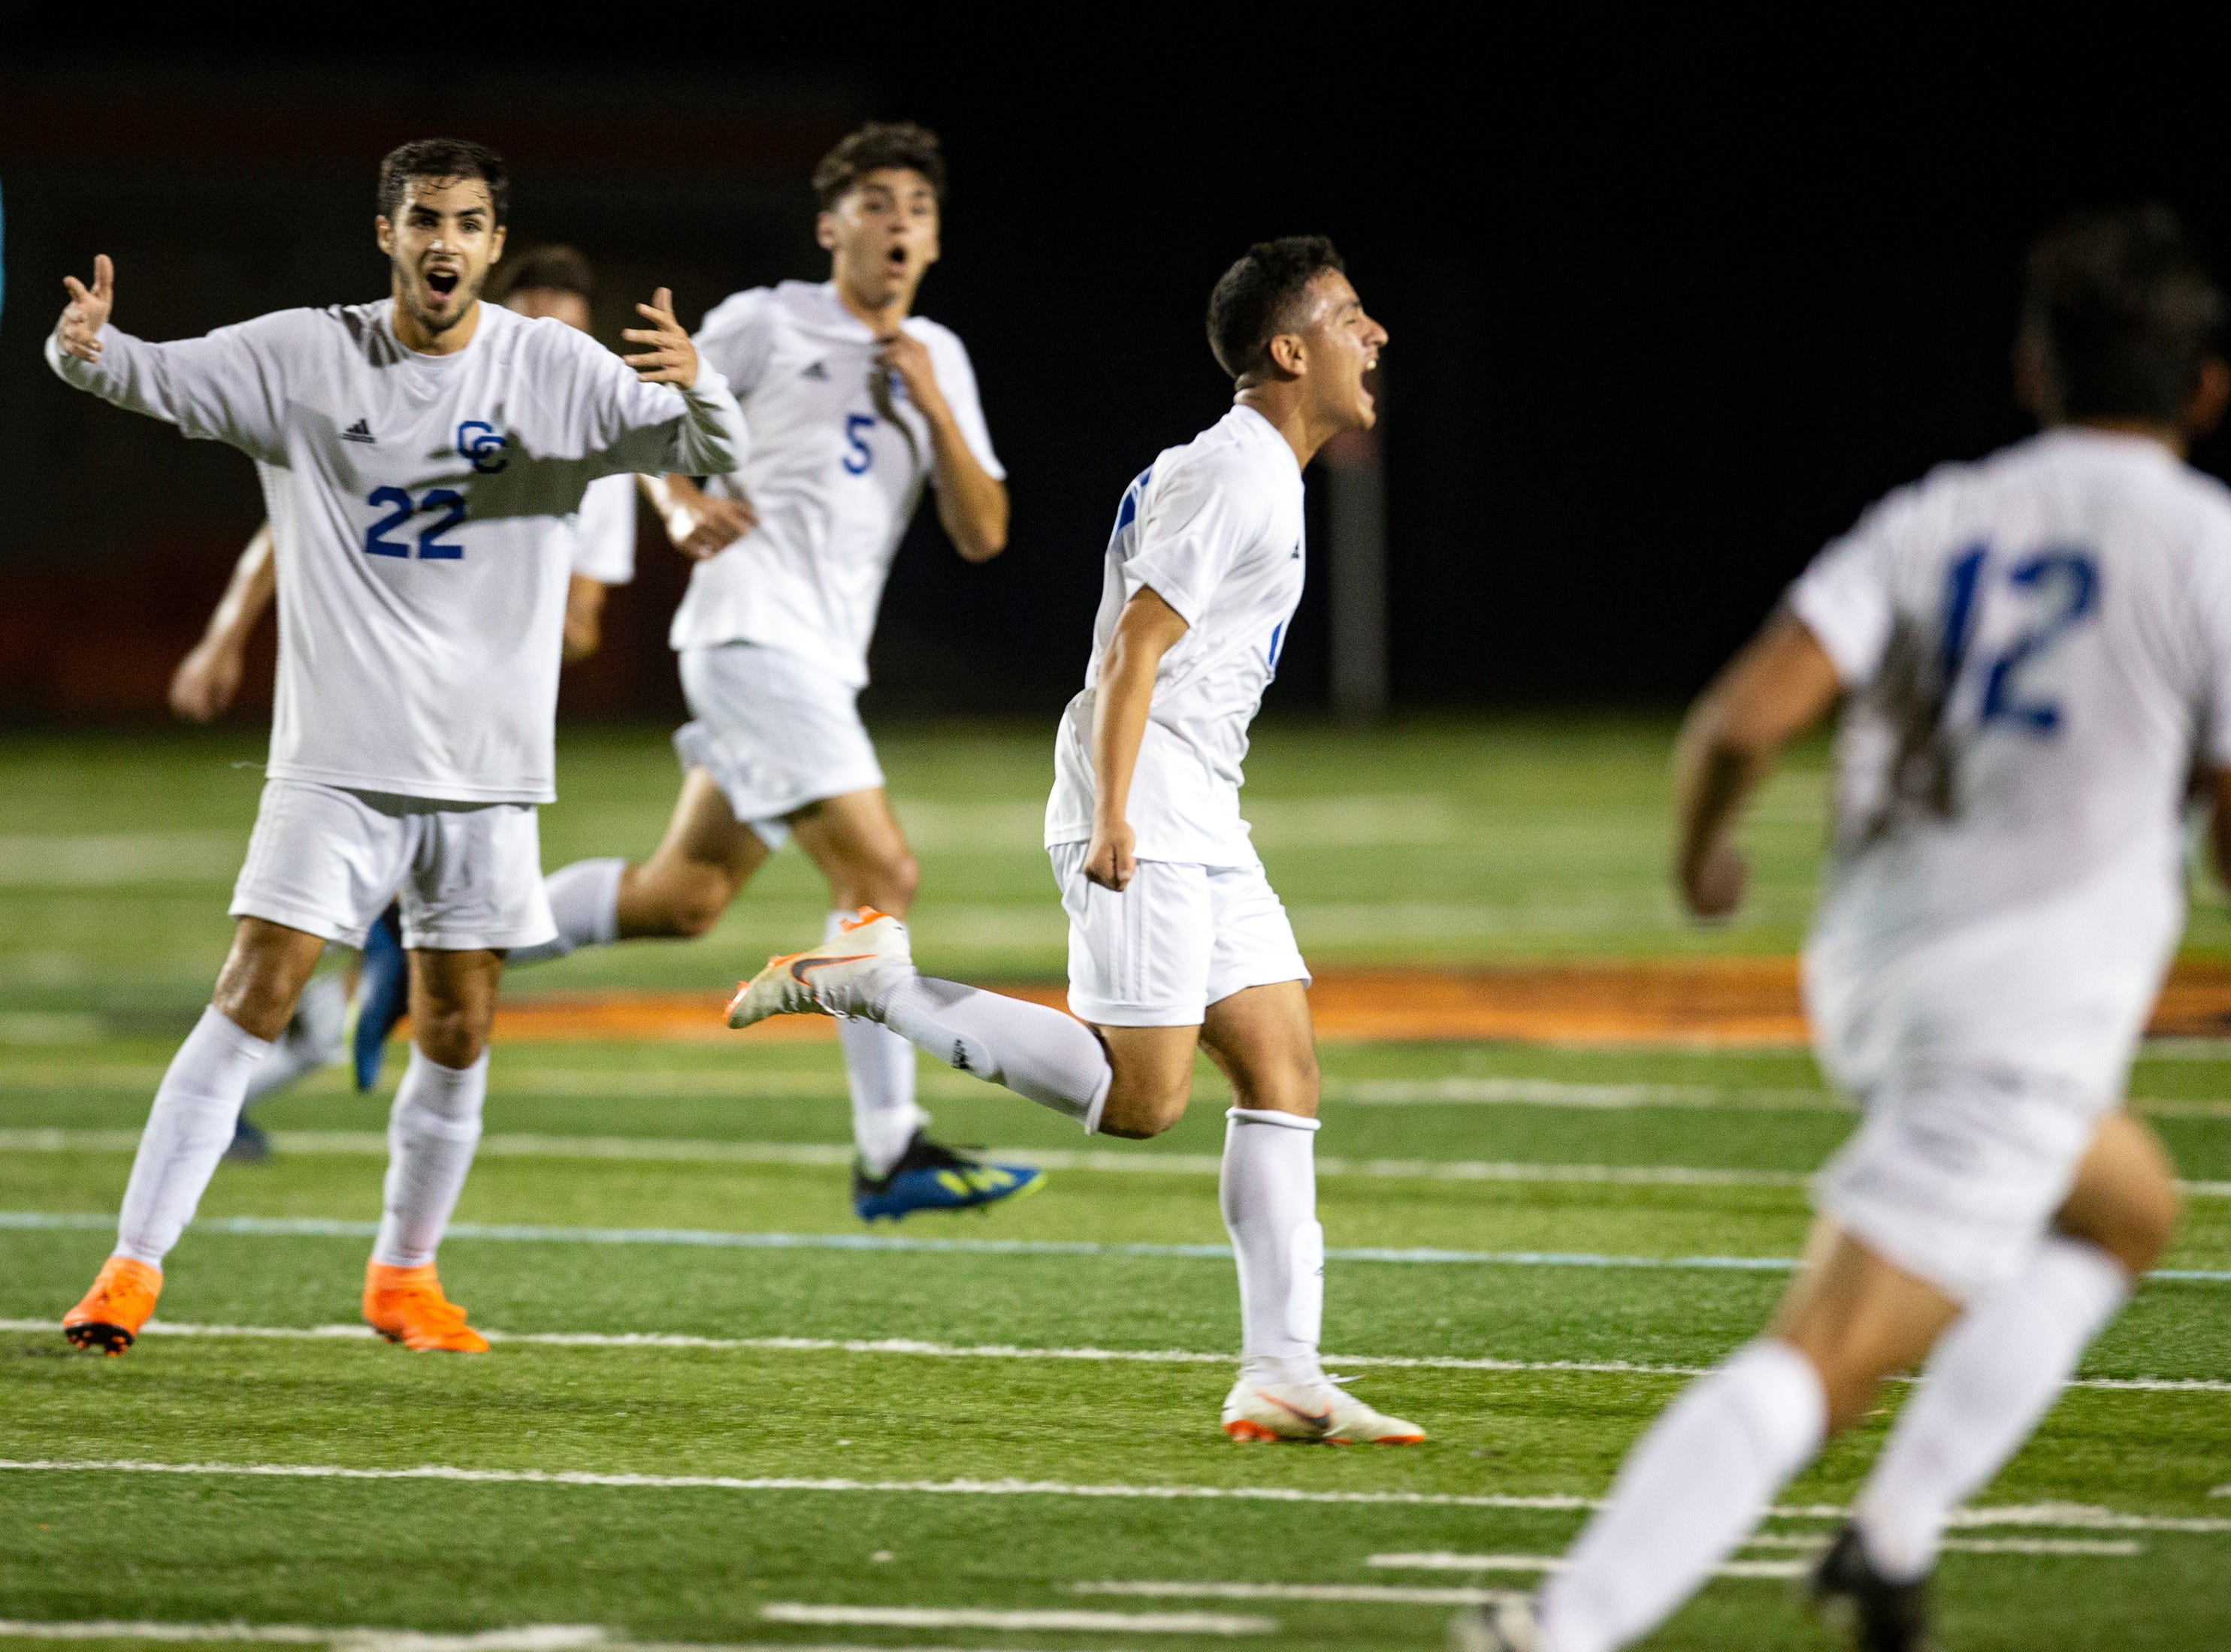 Cape Coral's Danilo Gomez, second from right, celebrates after scoring a goal against Lely High School, Wednesday, Feb. 6, 2019, at Lely High School.